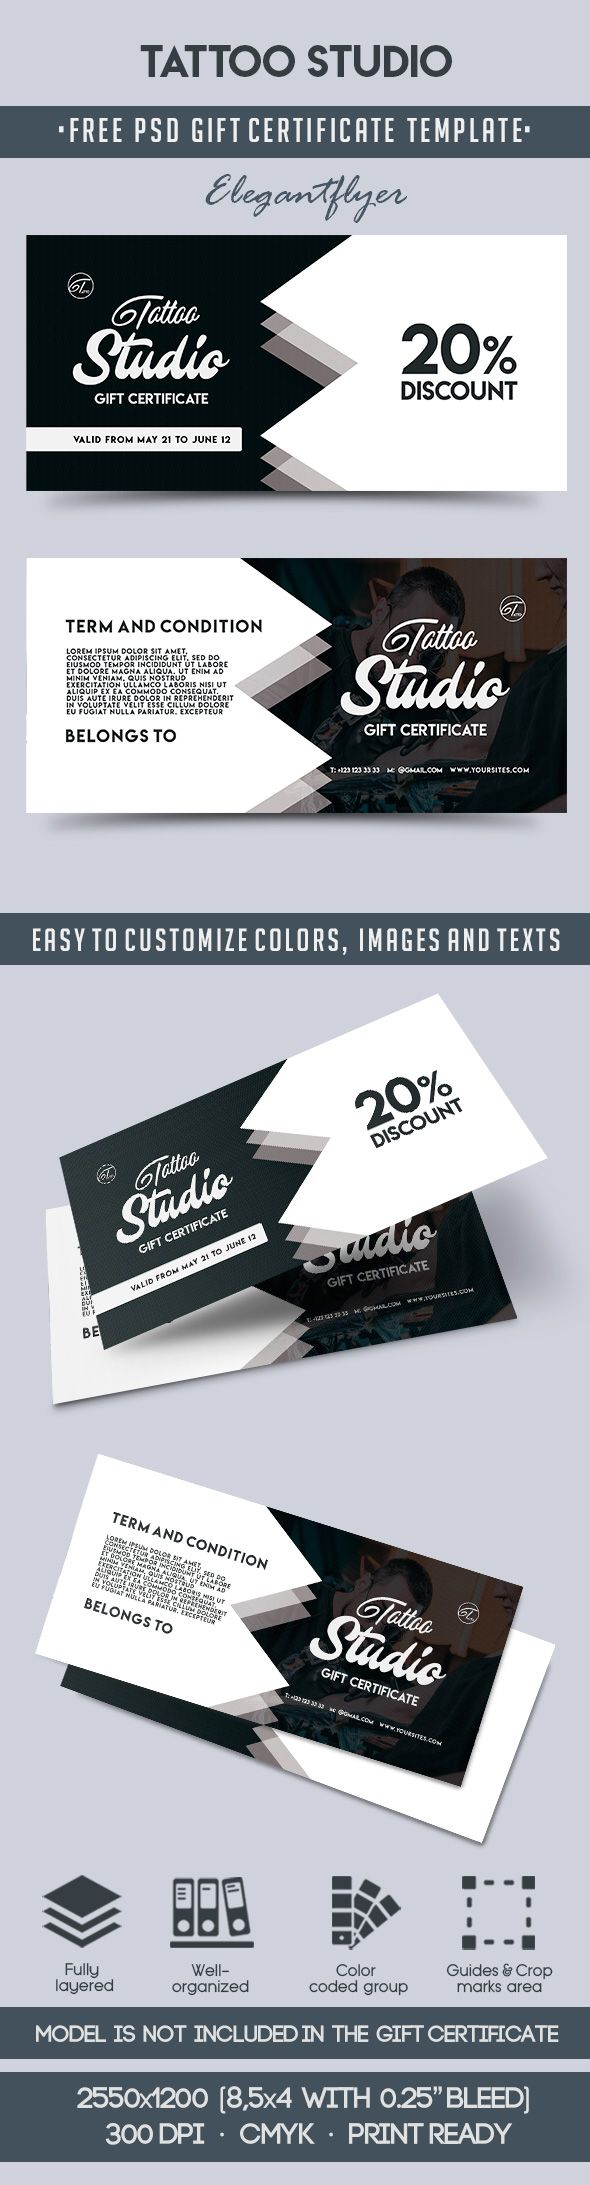 tattoo studio free gift certificate psd template by elegantflyer. Black Bedroom Furniture Sets. Home Design Ideas